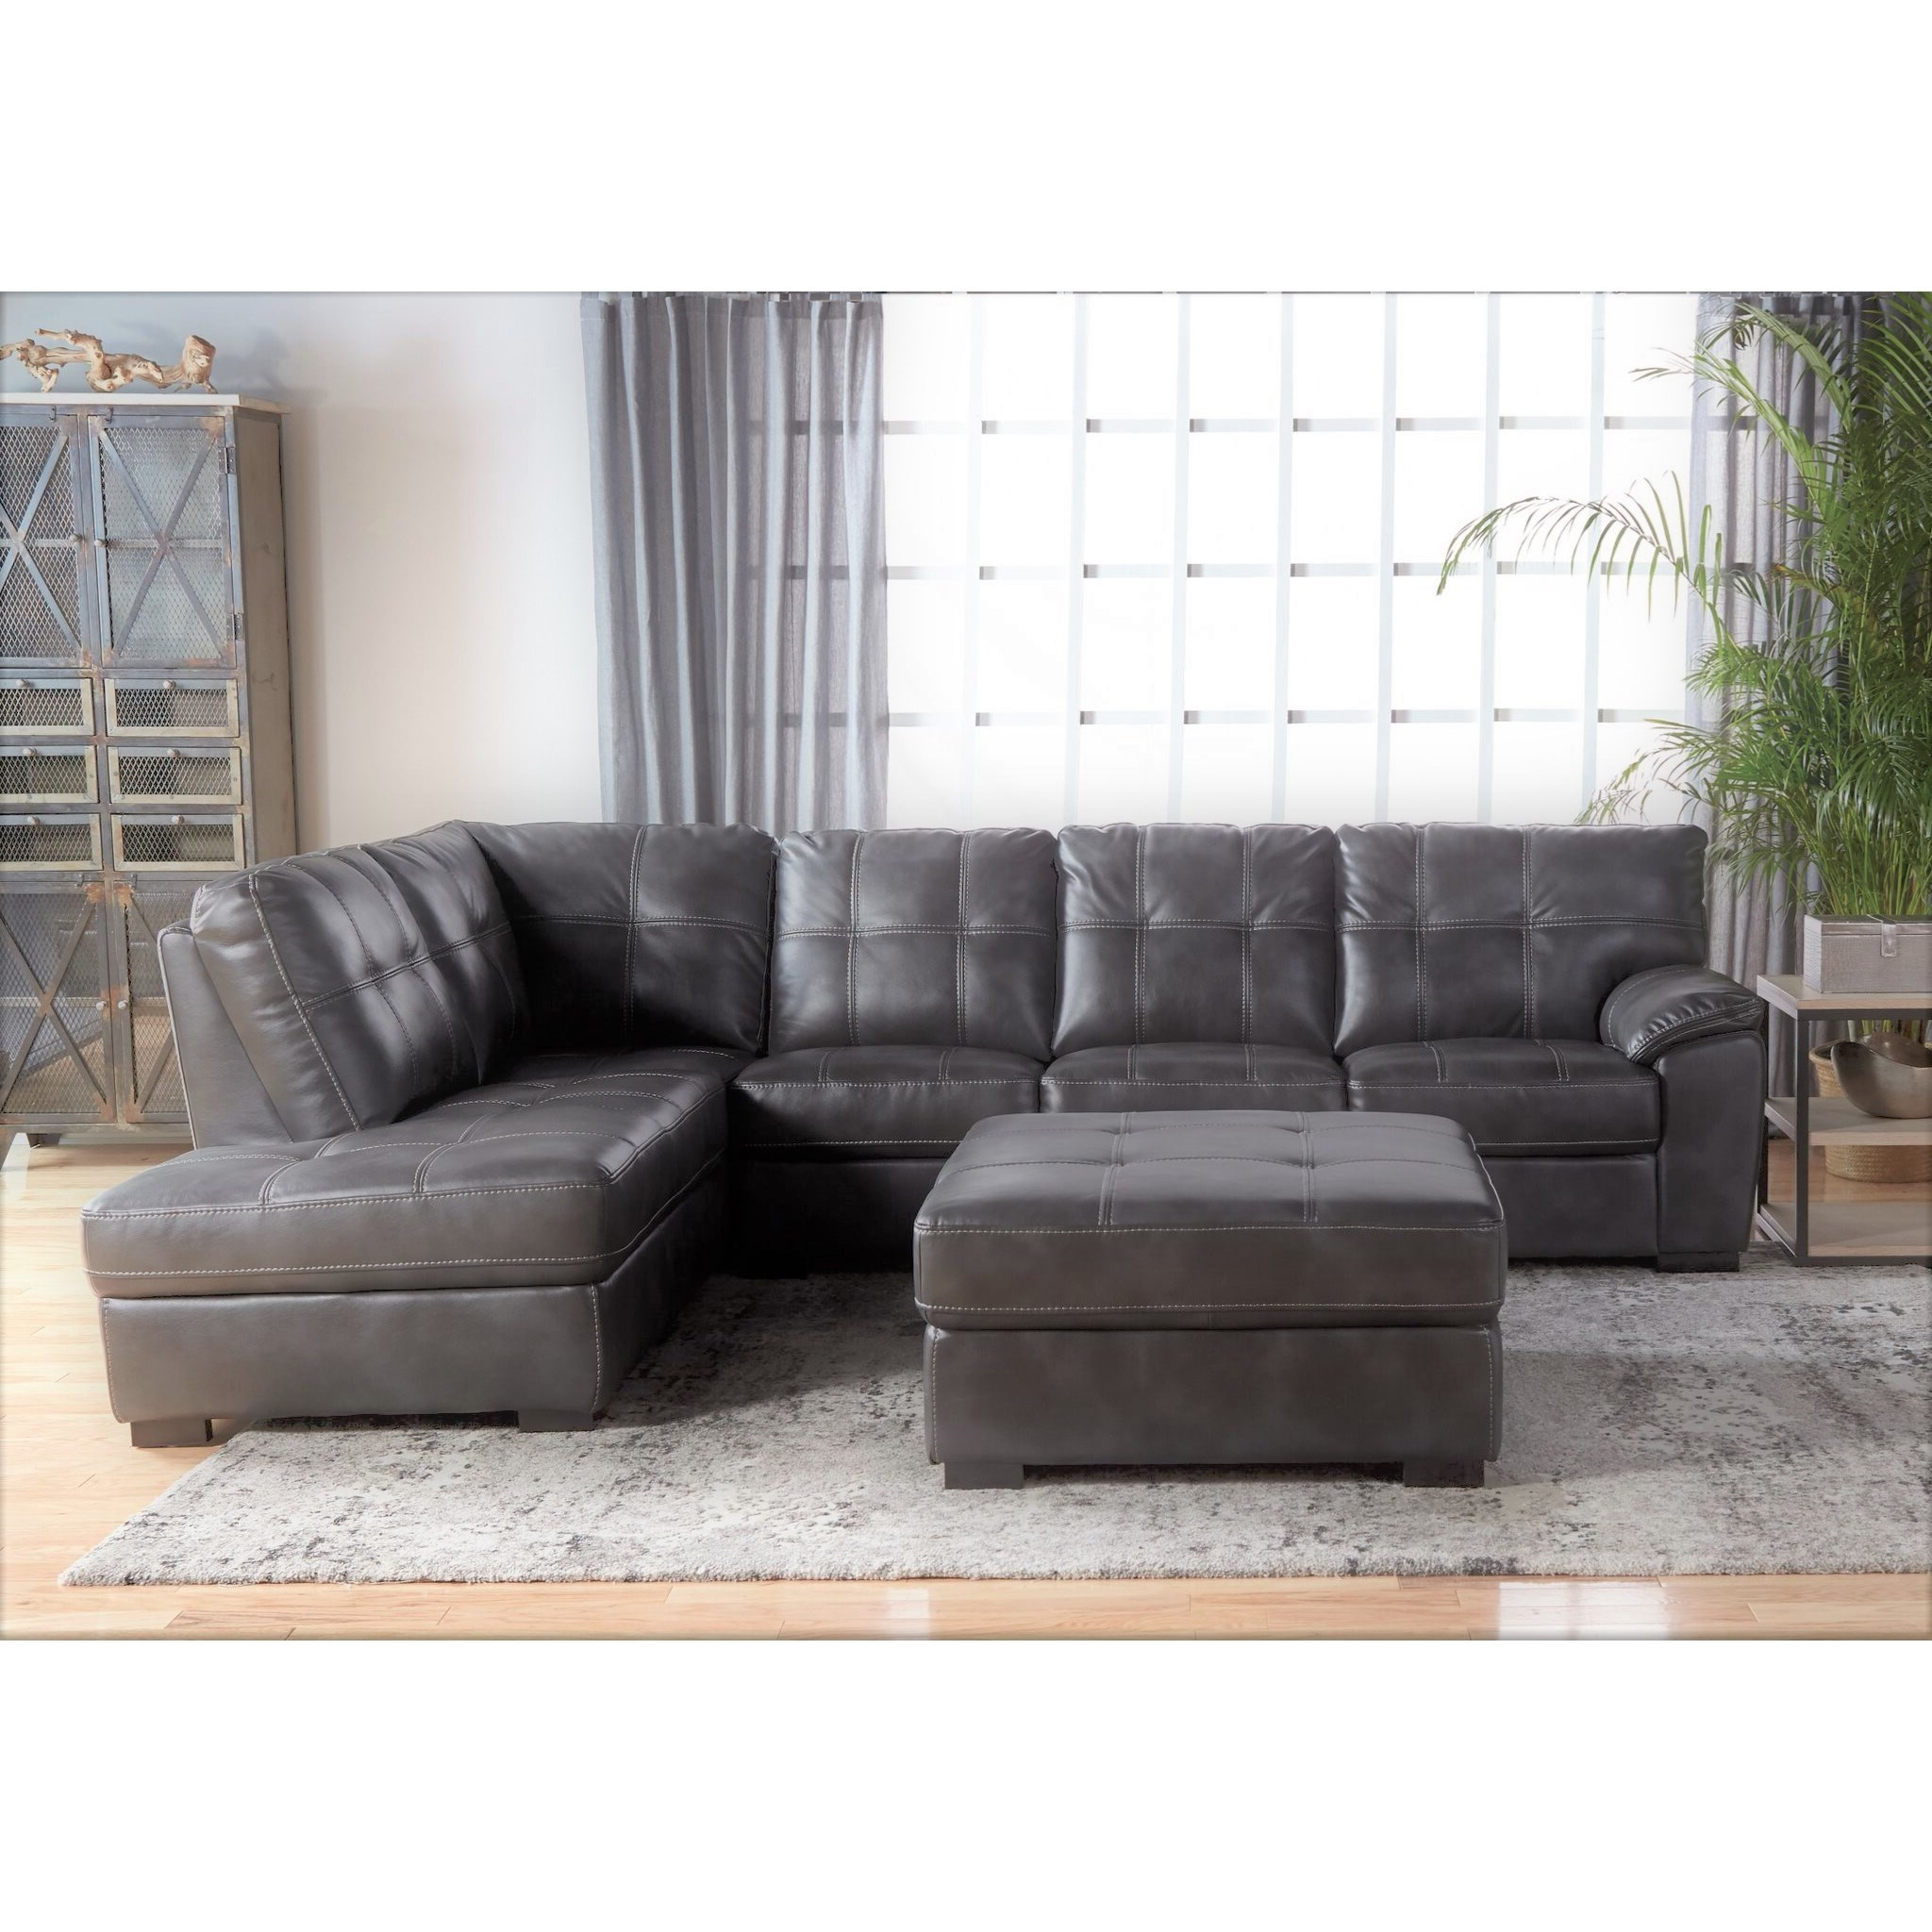 5312 tufted sectional with bumper chaise